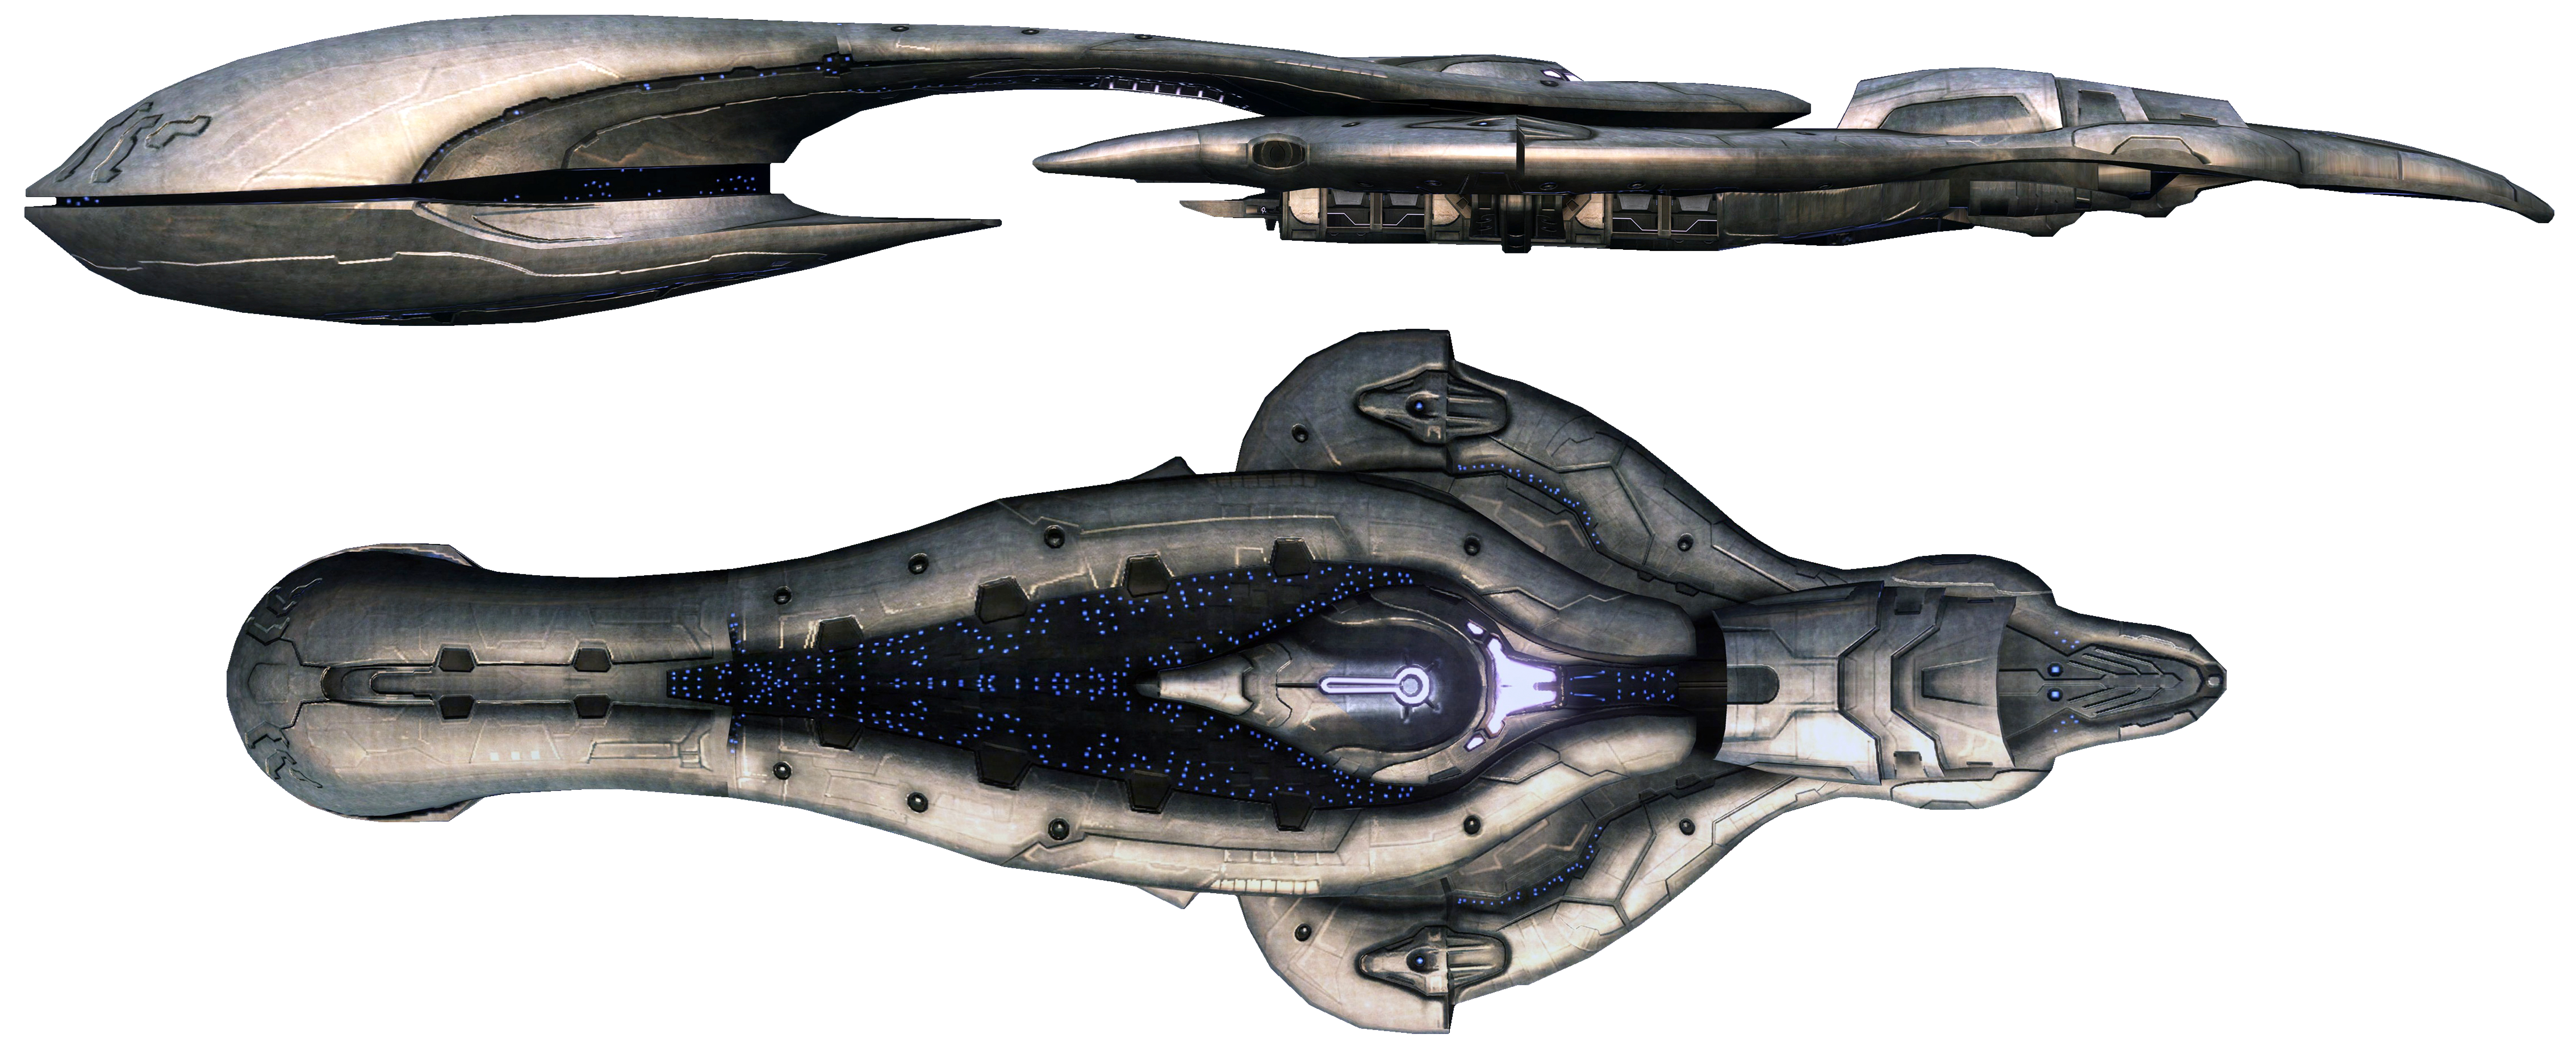 Overview Covenant Assault Carrier Png 4536 1858 Halo Ships Spaceship Art The Covenant